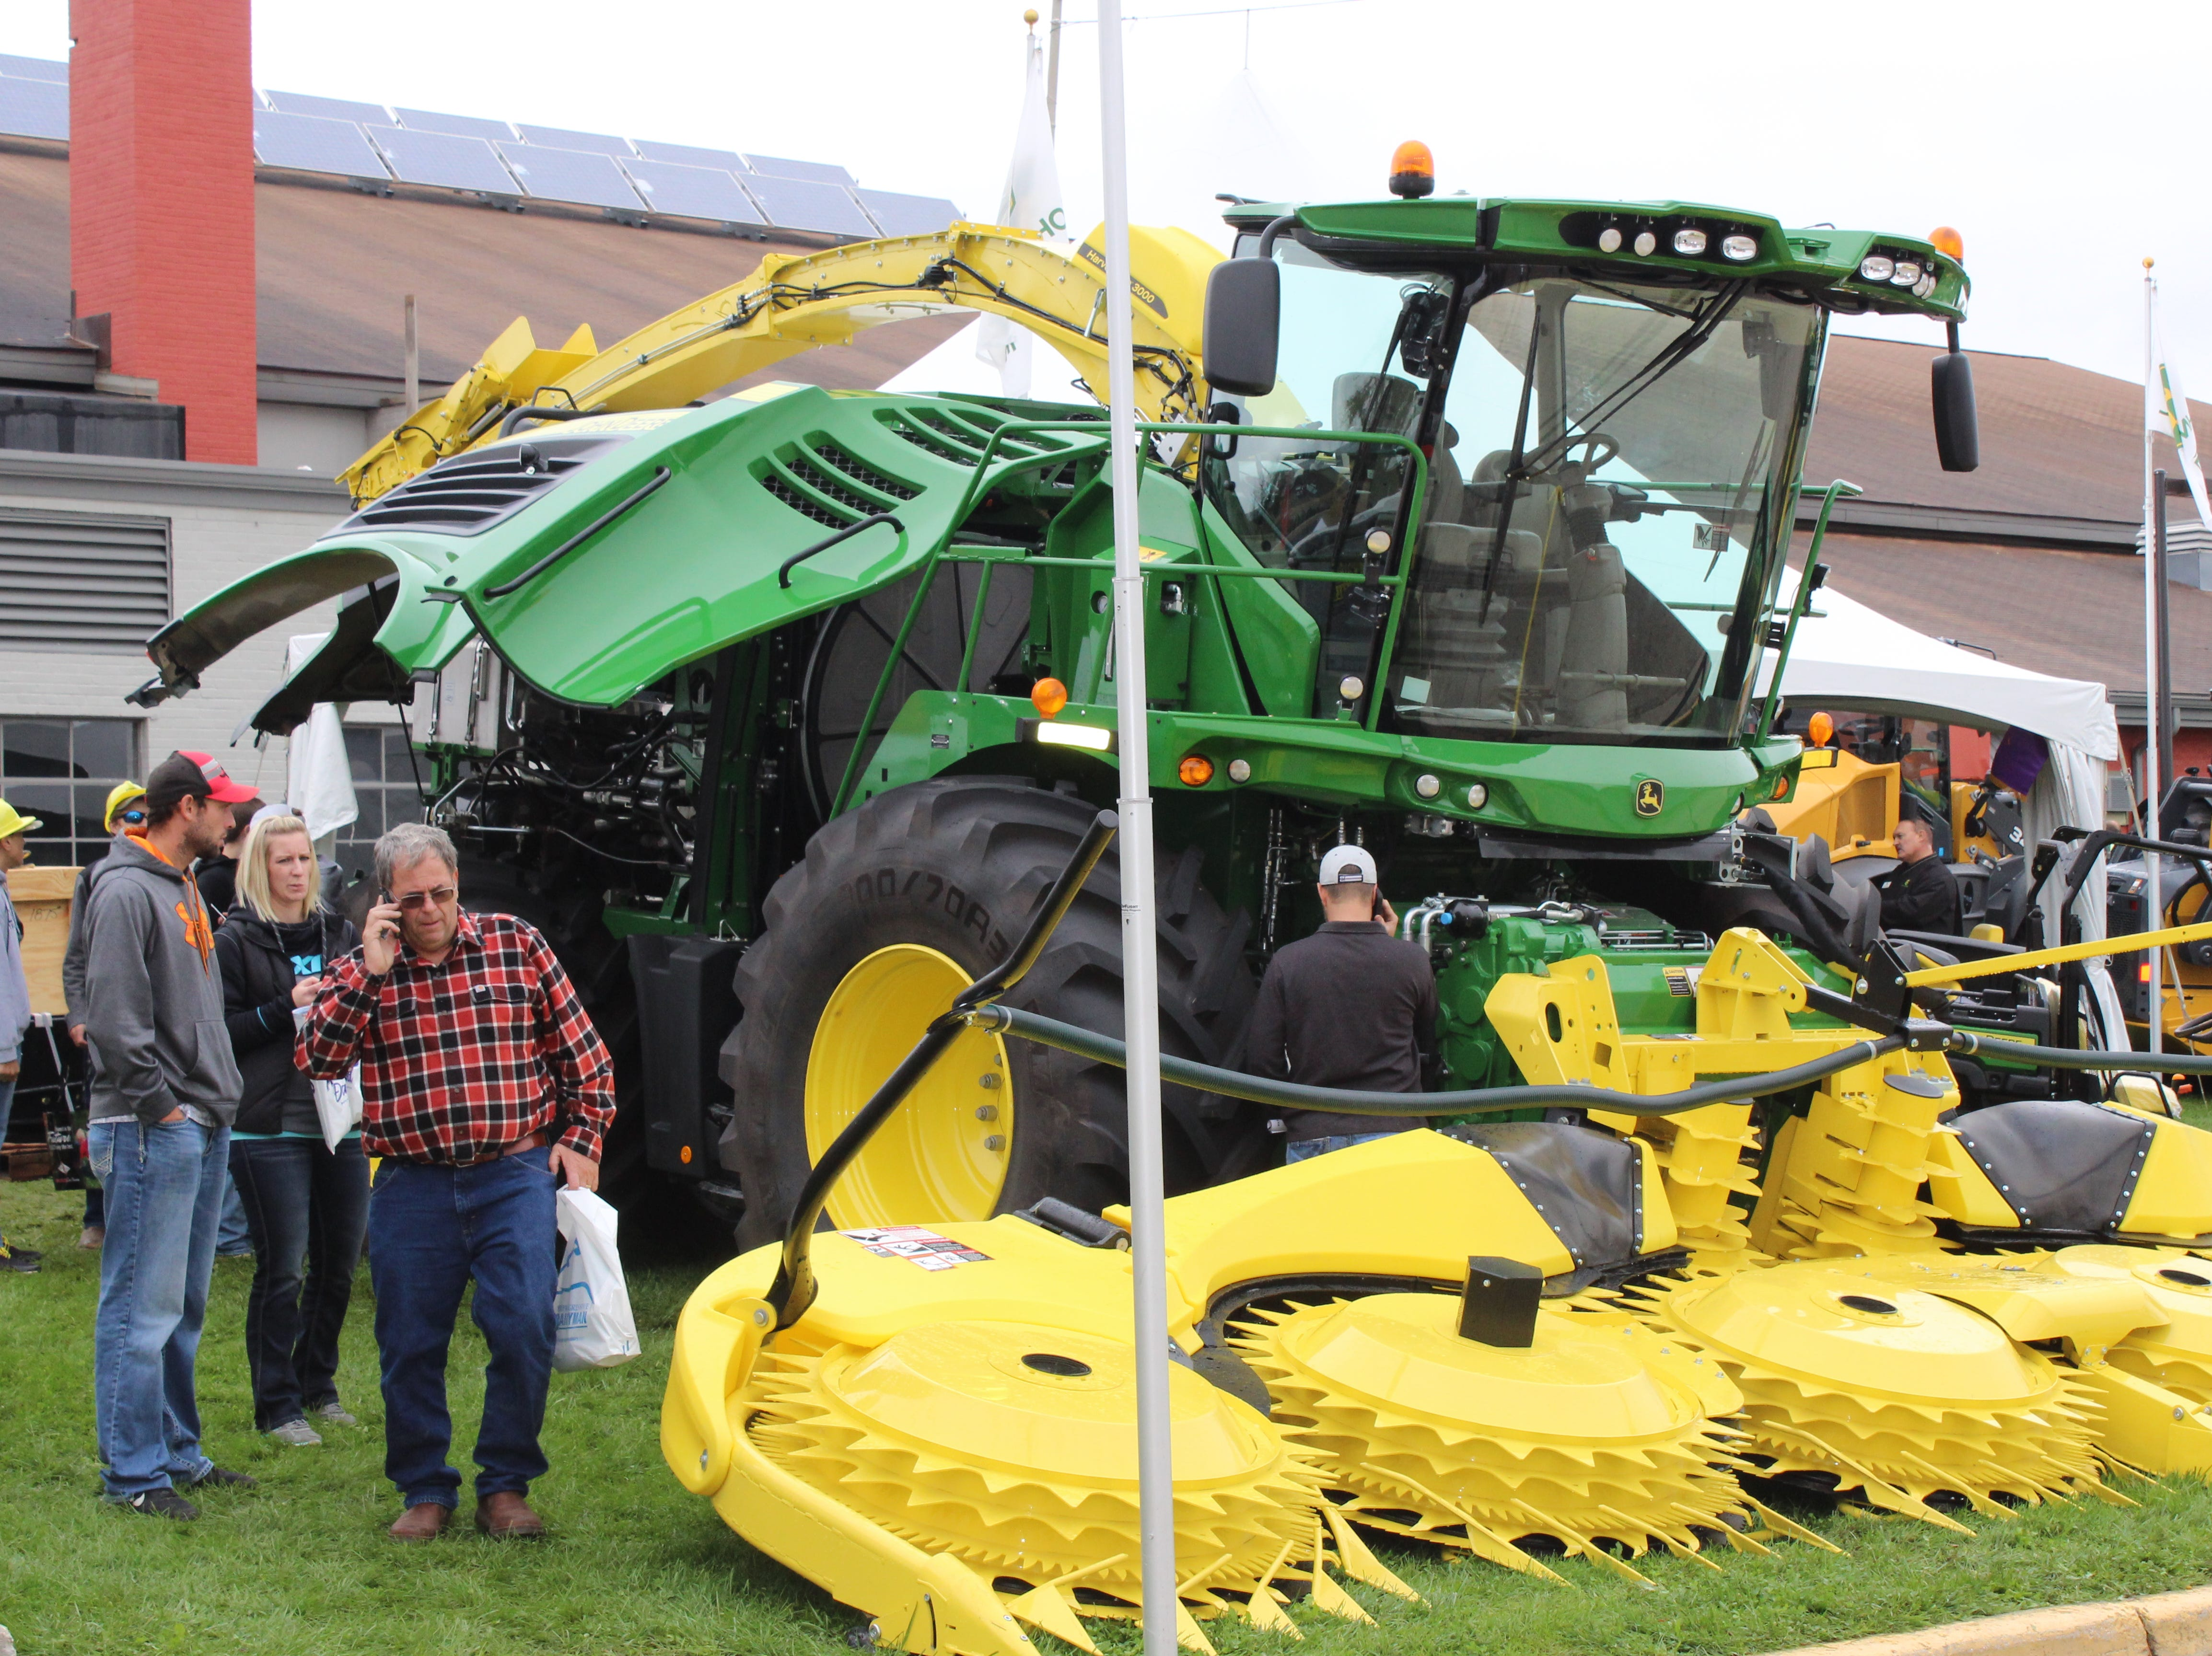 Checking out the latest and greatest farm machinery.